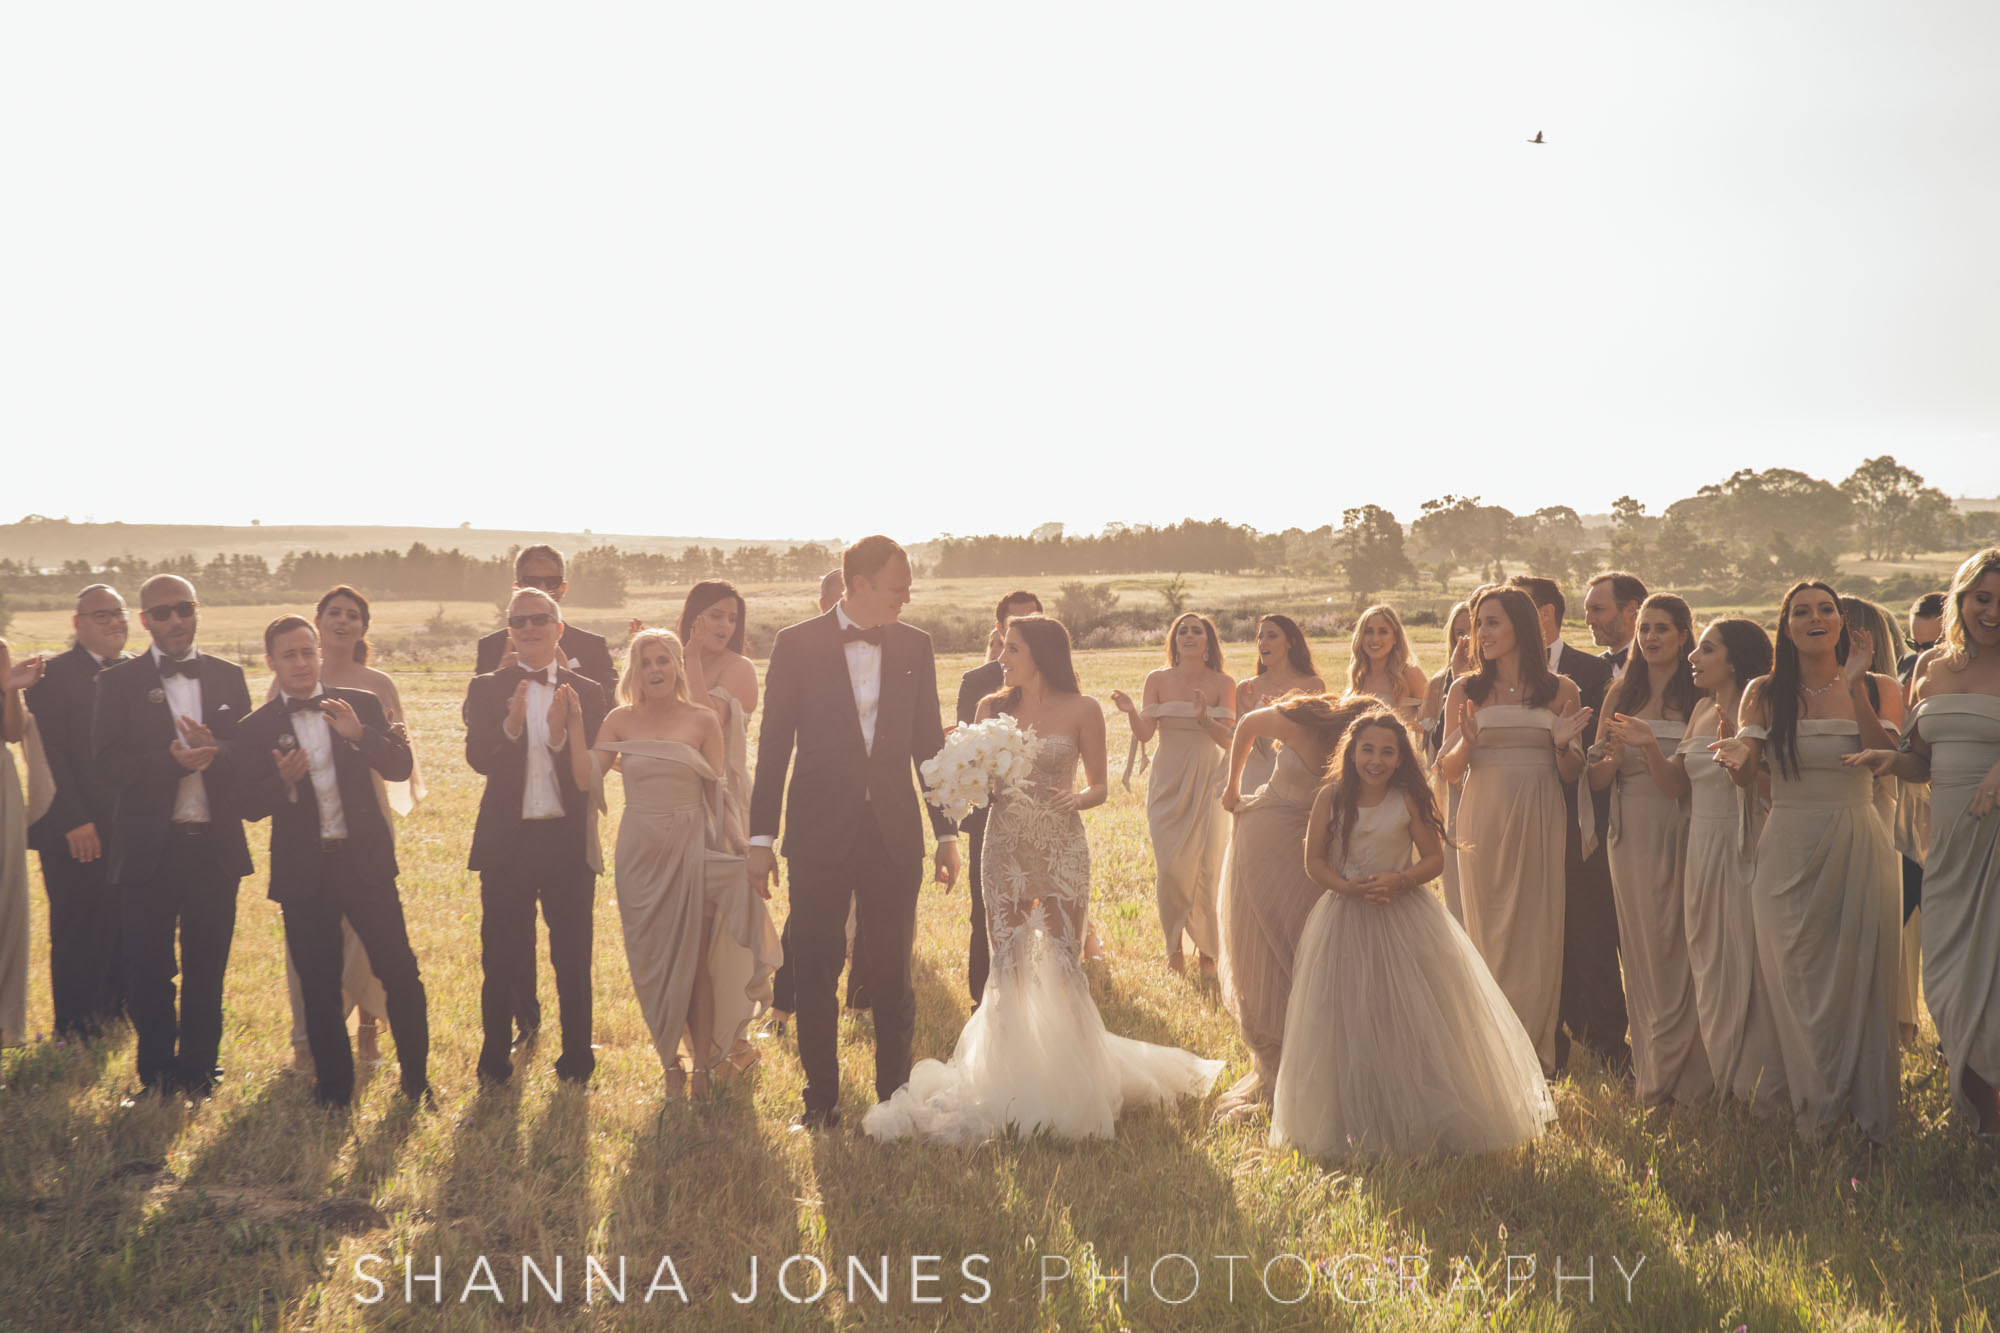 anura-cape-town-wedding-shanna-jones-photography-danna-paul-113.jpg